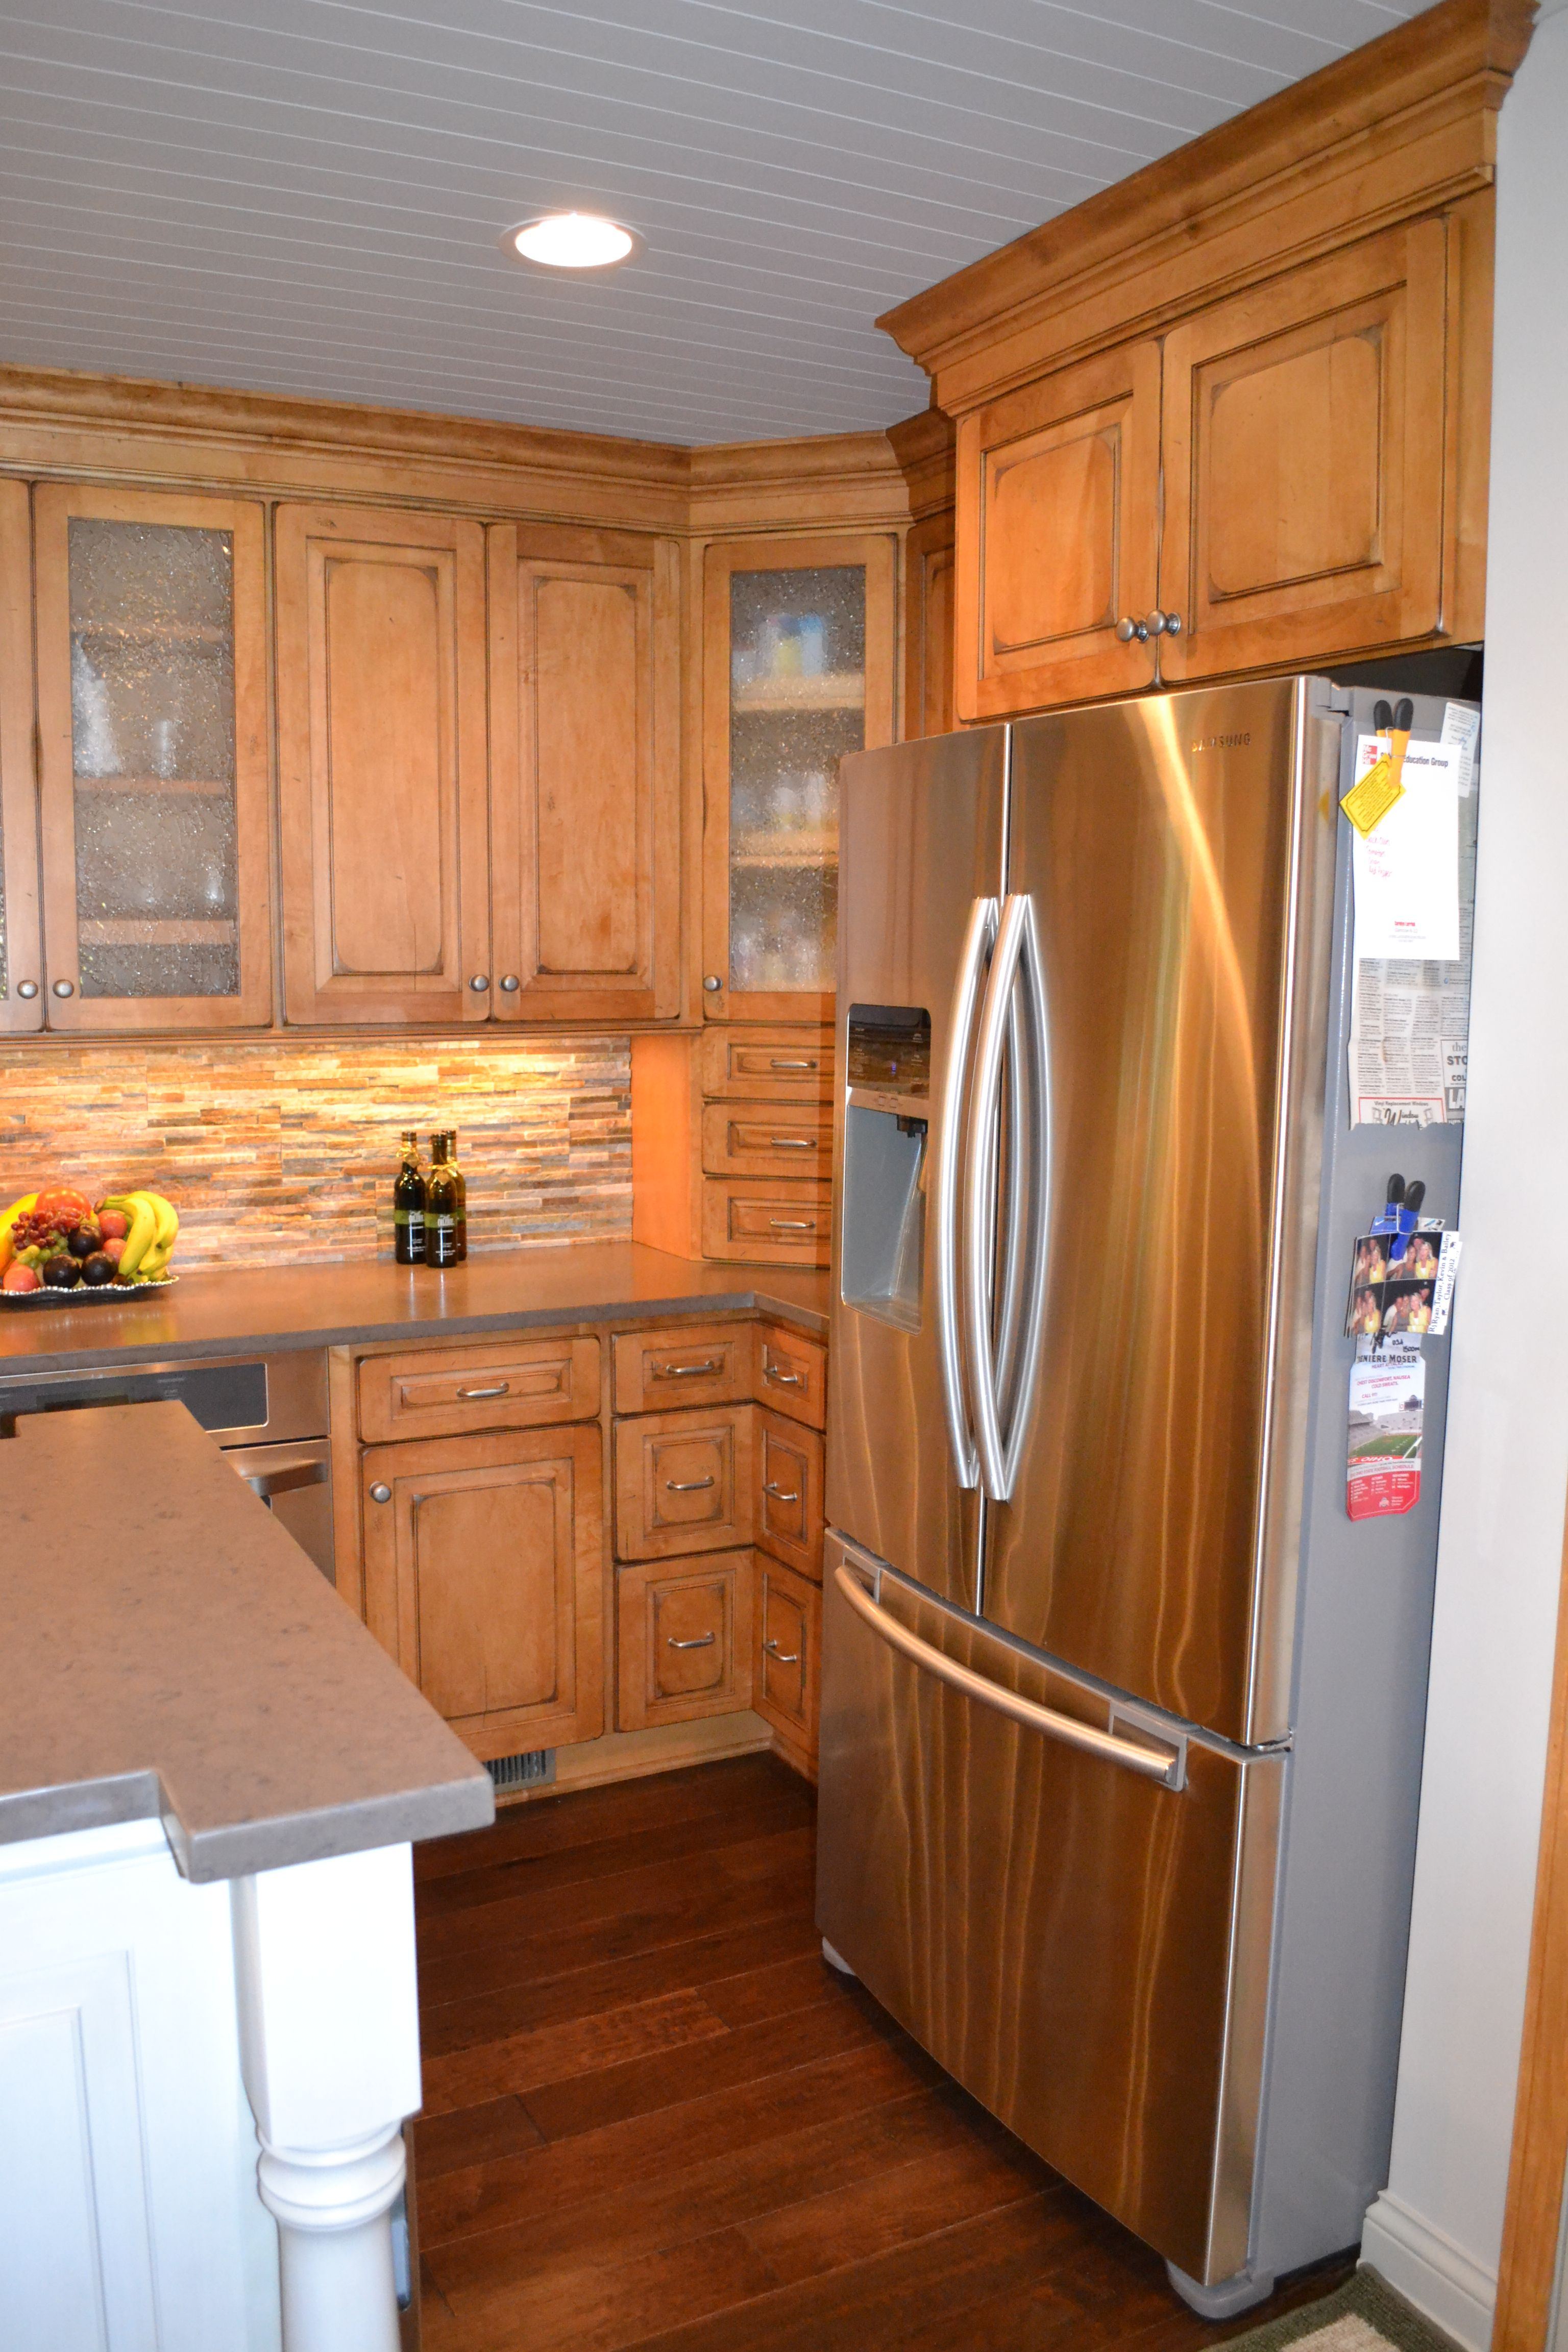 - Westerville, Ohio, Kitchen Remodel By Don With The Jae Company